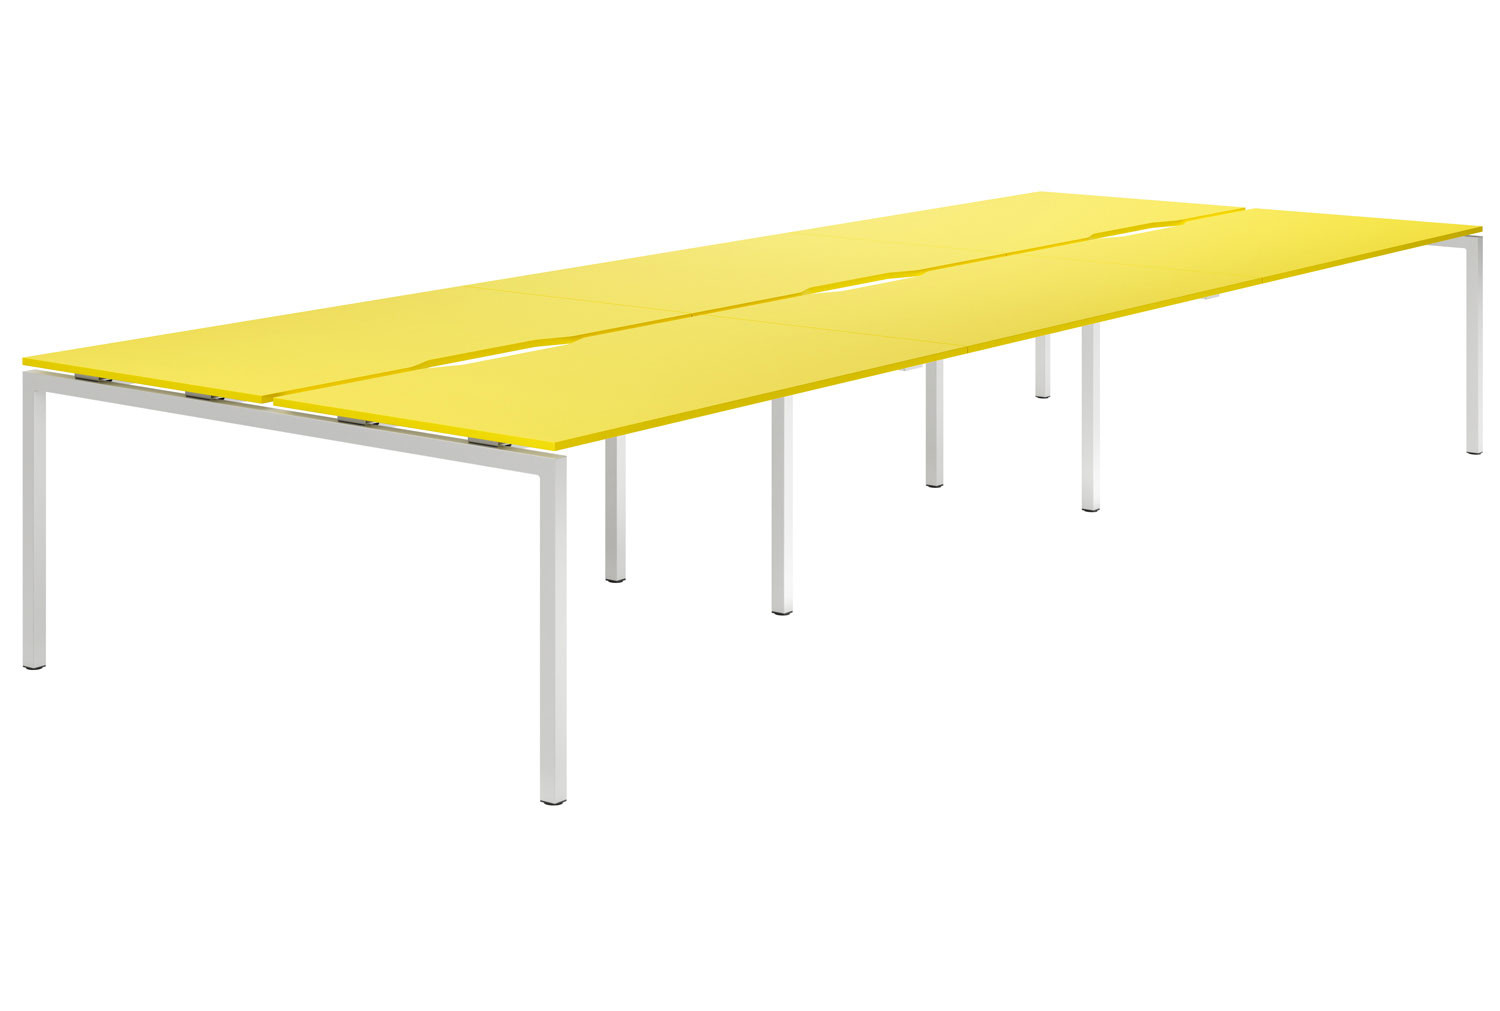 Campos H-Leg 6 Person Back To Back Bench Desk (Yellow)